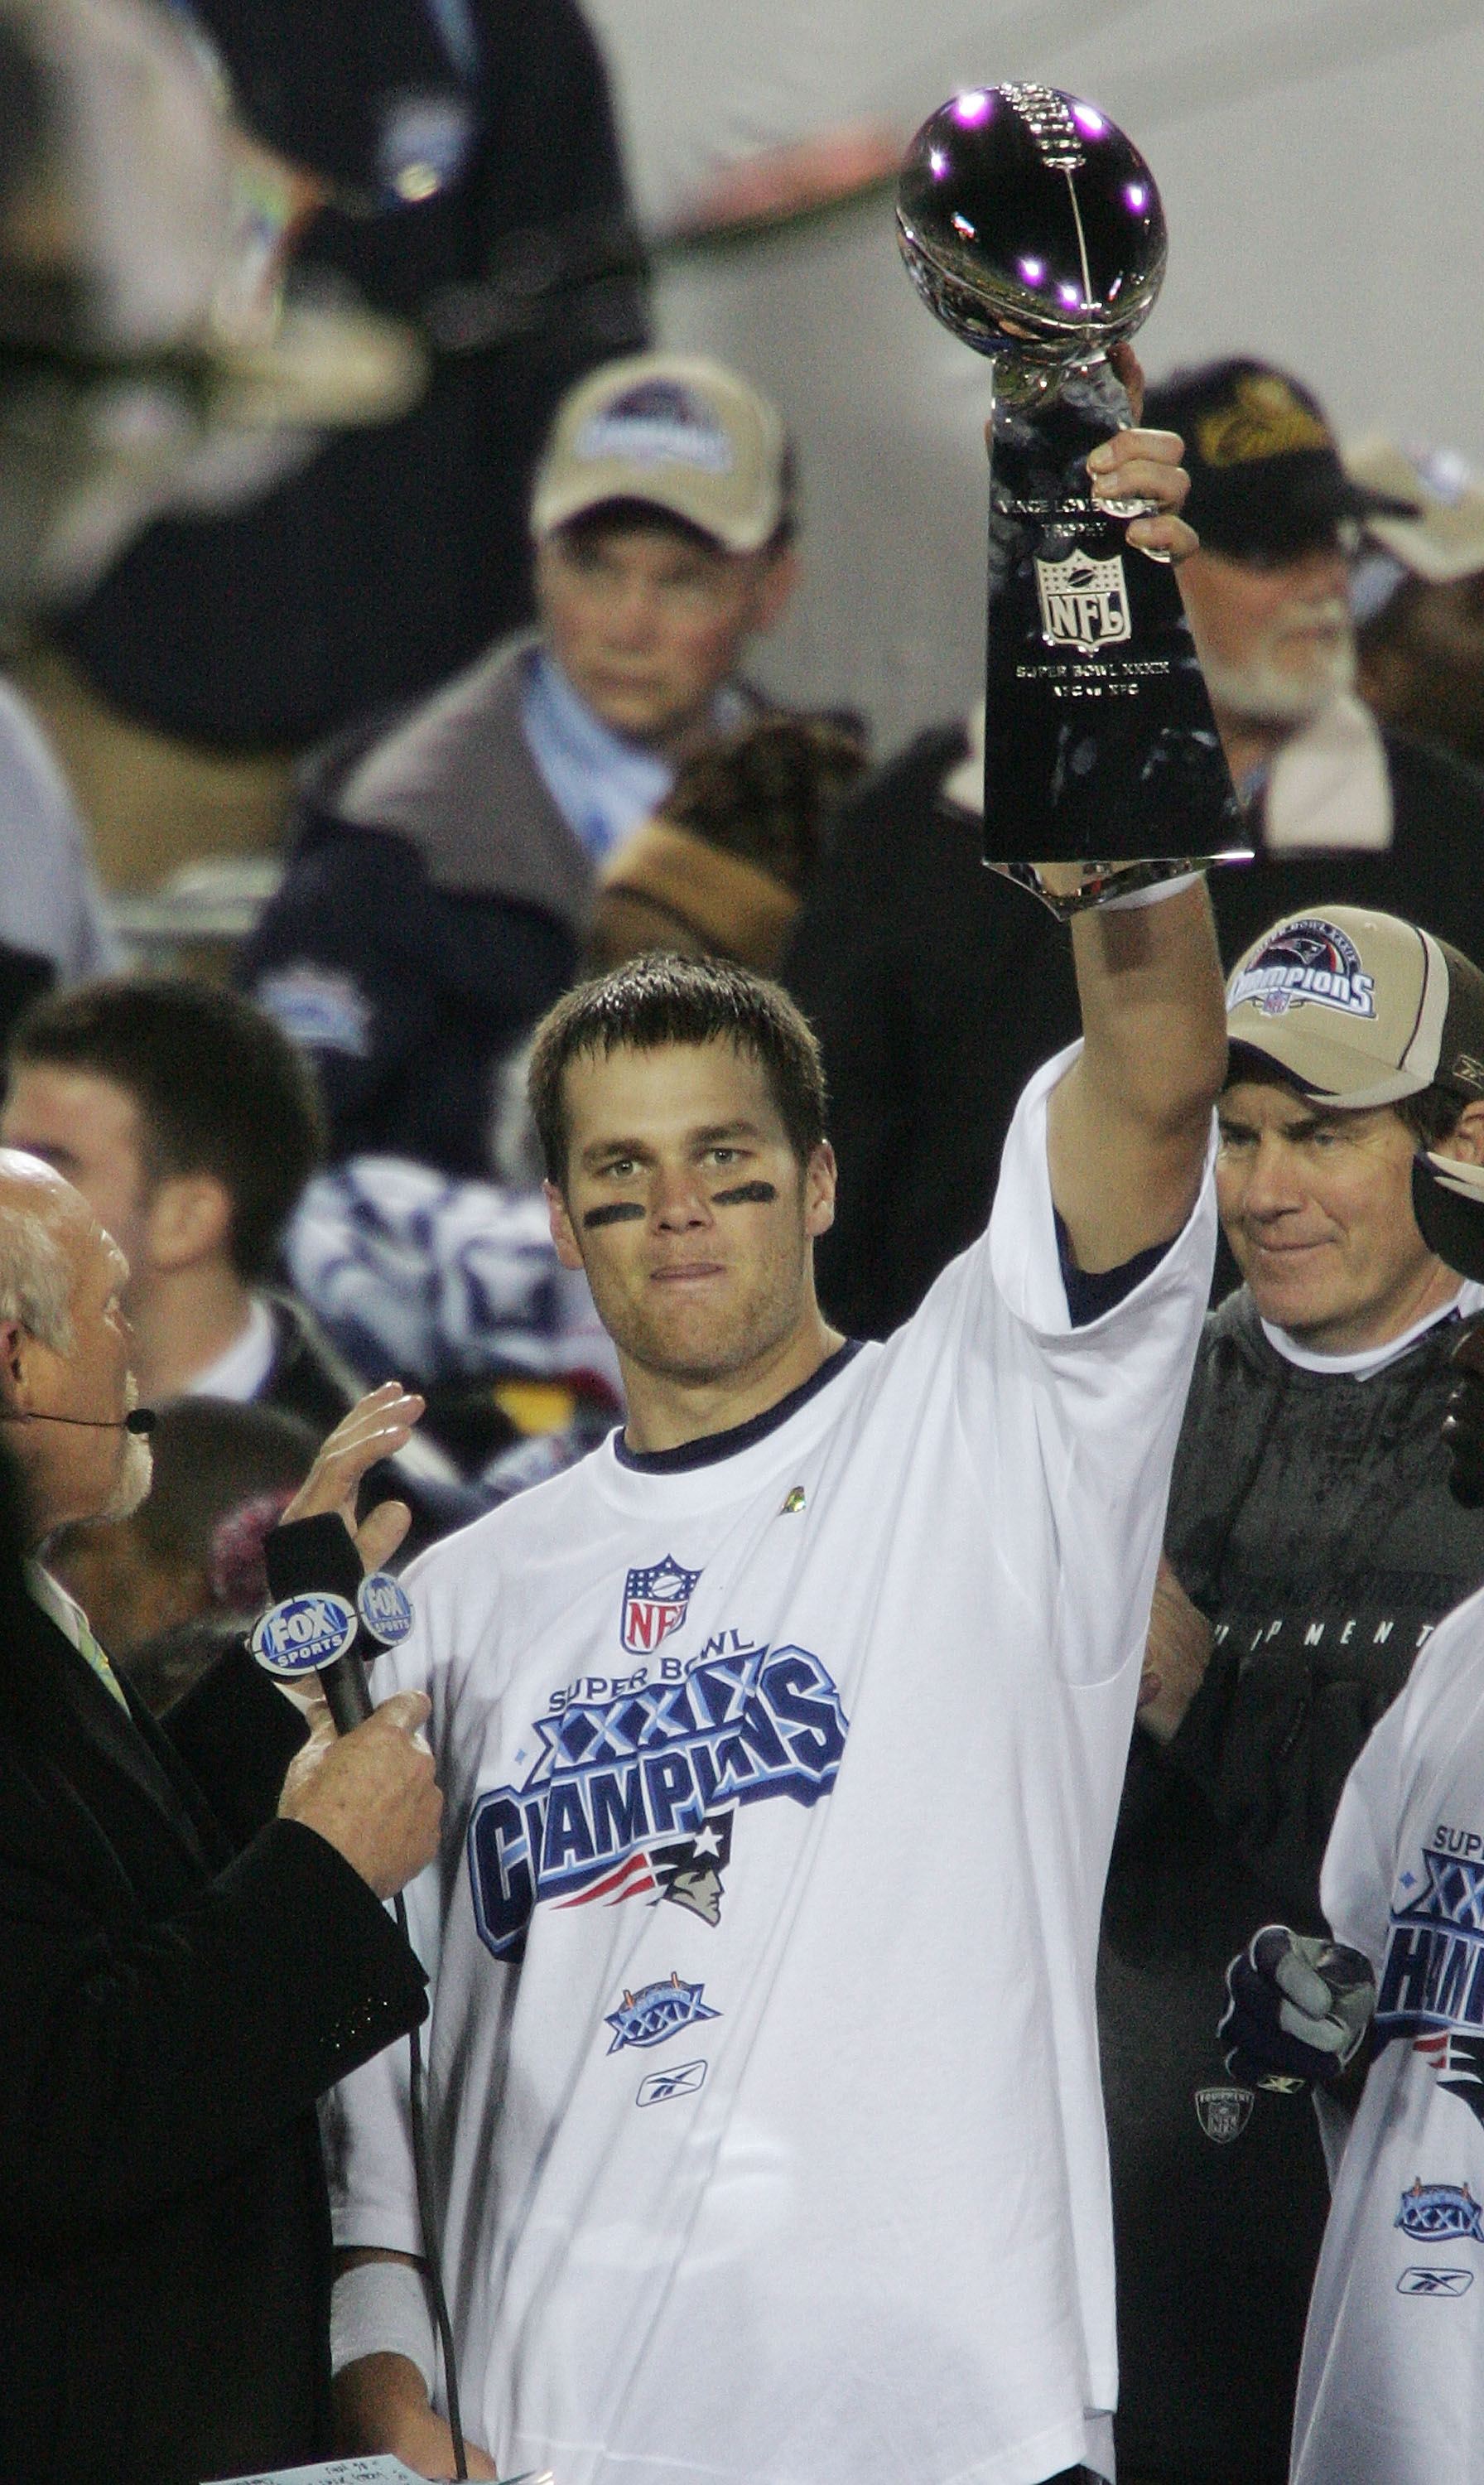 JACKSONVILLE, FLORIDA - FEBRUARY 06:  Quarterback Tom Brady #12 of the New England Patriots celebrates with the Lombardi trophy after defeating the Philadelphia Eagles in Super Bowl XXXIX at Alltel Stadium on February 6, 2005 in Jacksonville, Florida.  Th